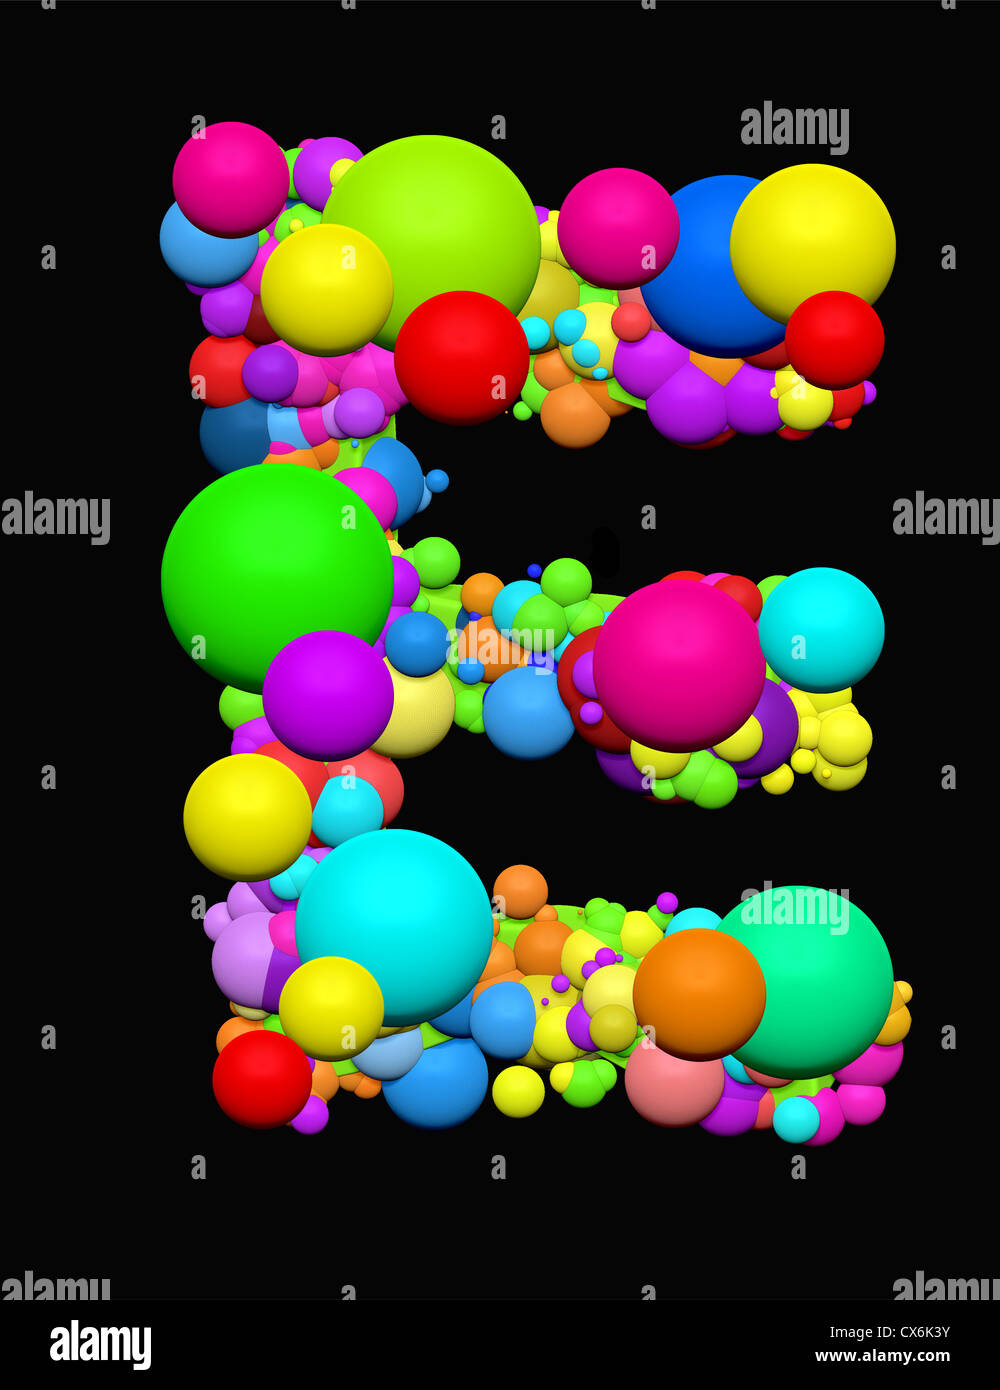 alphabet letter sign abc symbol 3d3d graphics illustration e sign e balls bubbles letter e